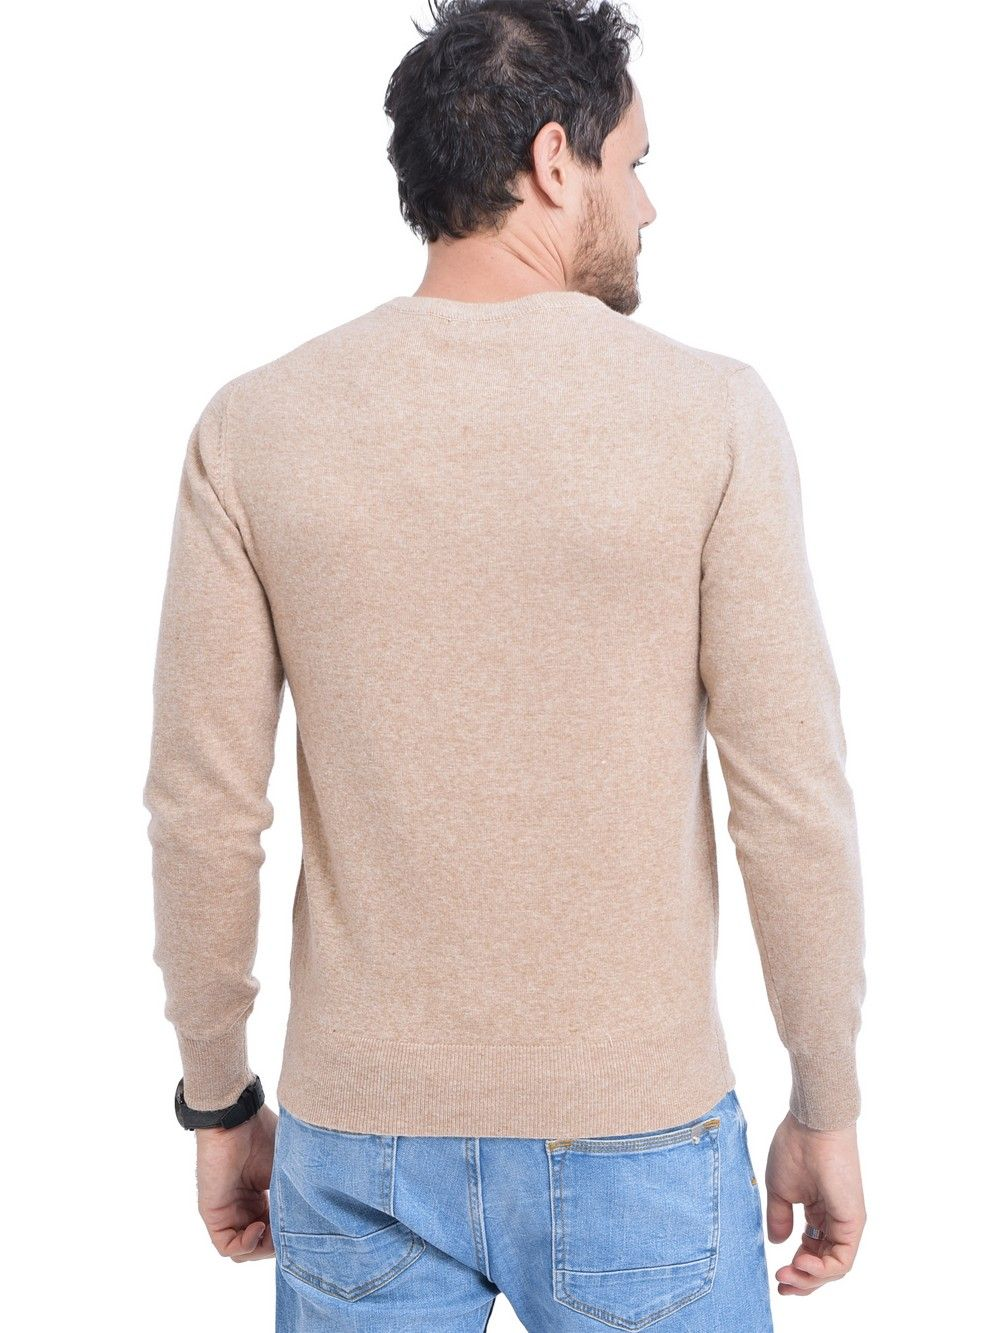 C&JO V-neck Sweater in Beige